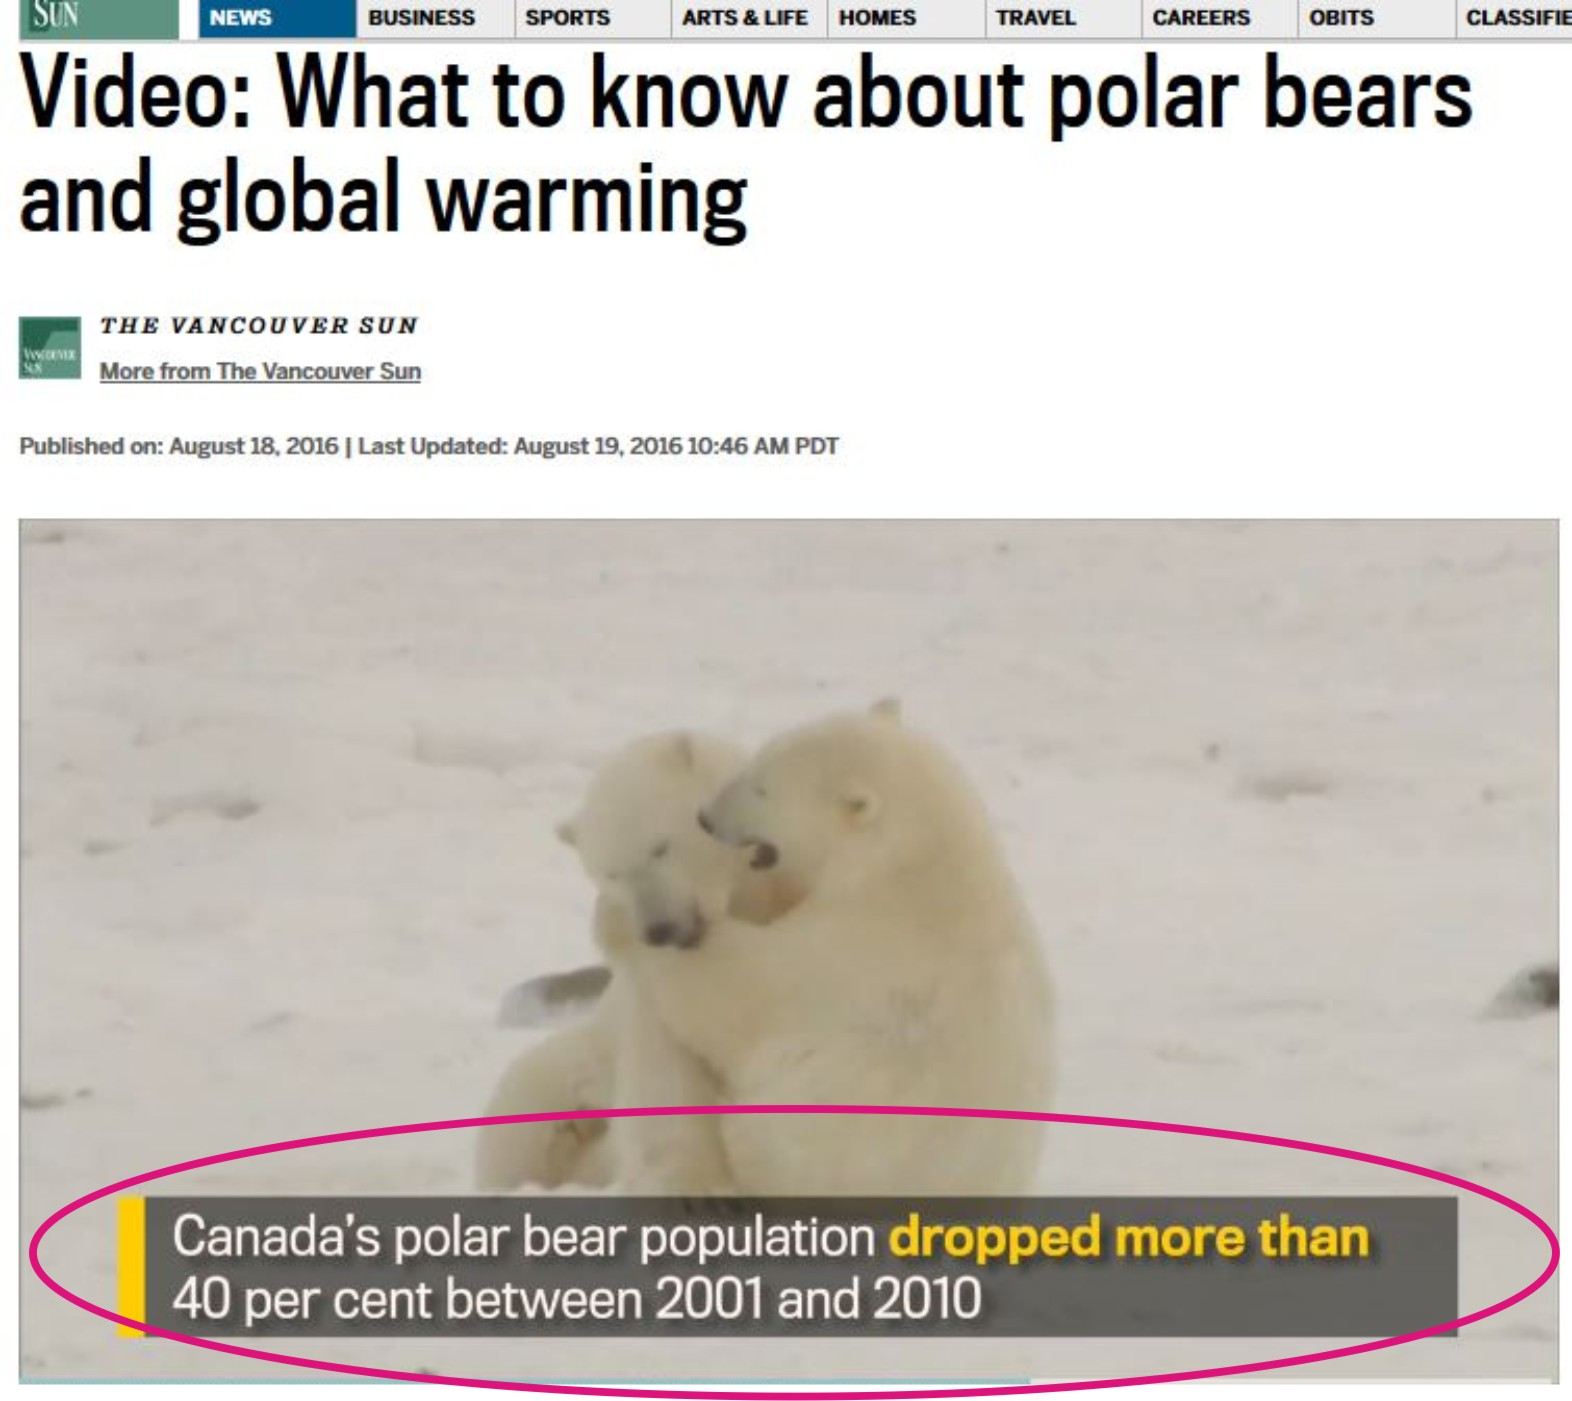 What to know about pbs GW_Video_screencap 2_SUN_18 Aug 2016 marked